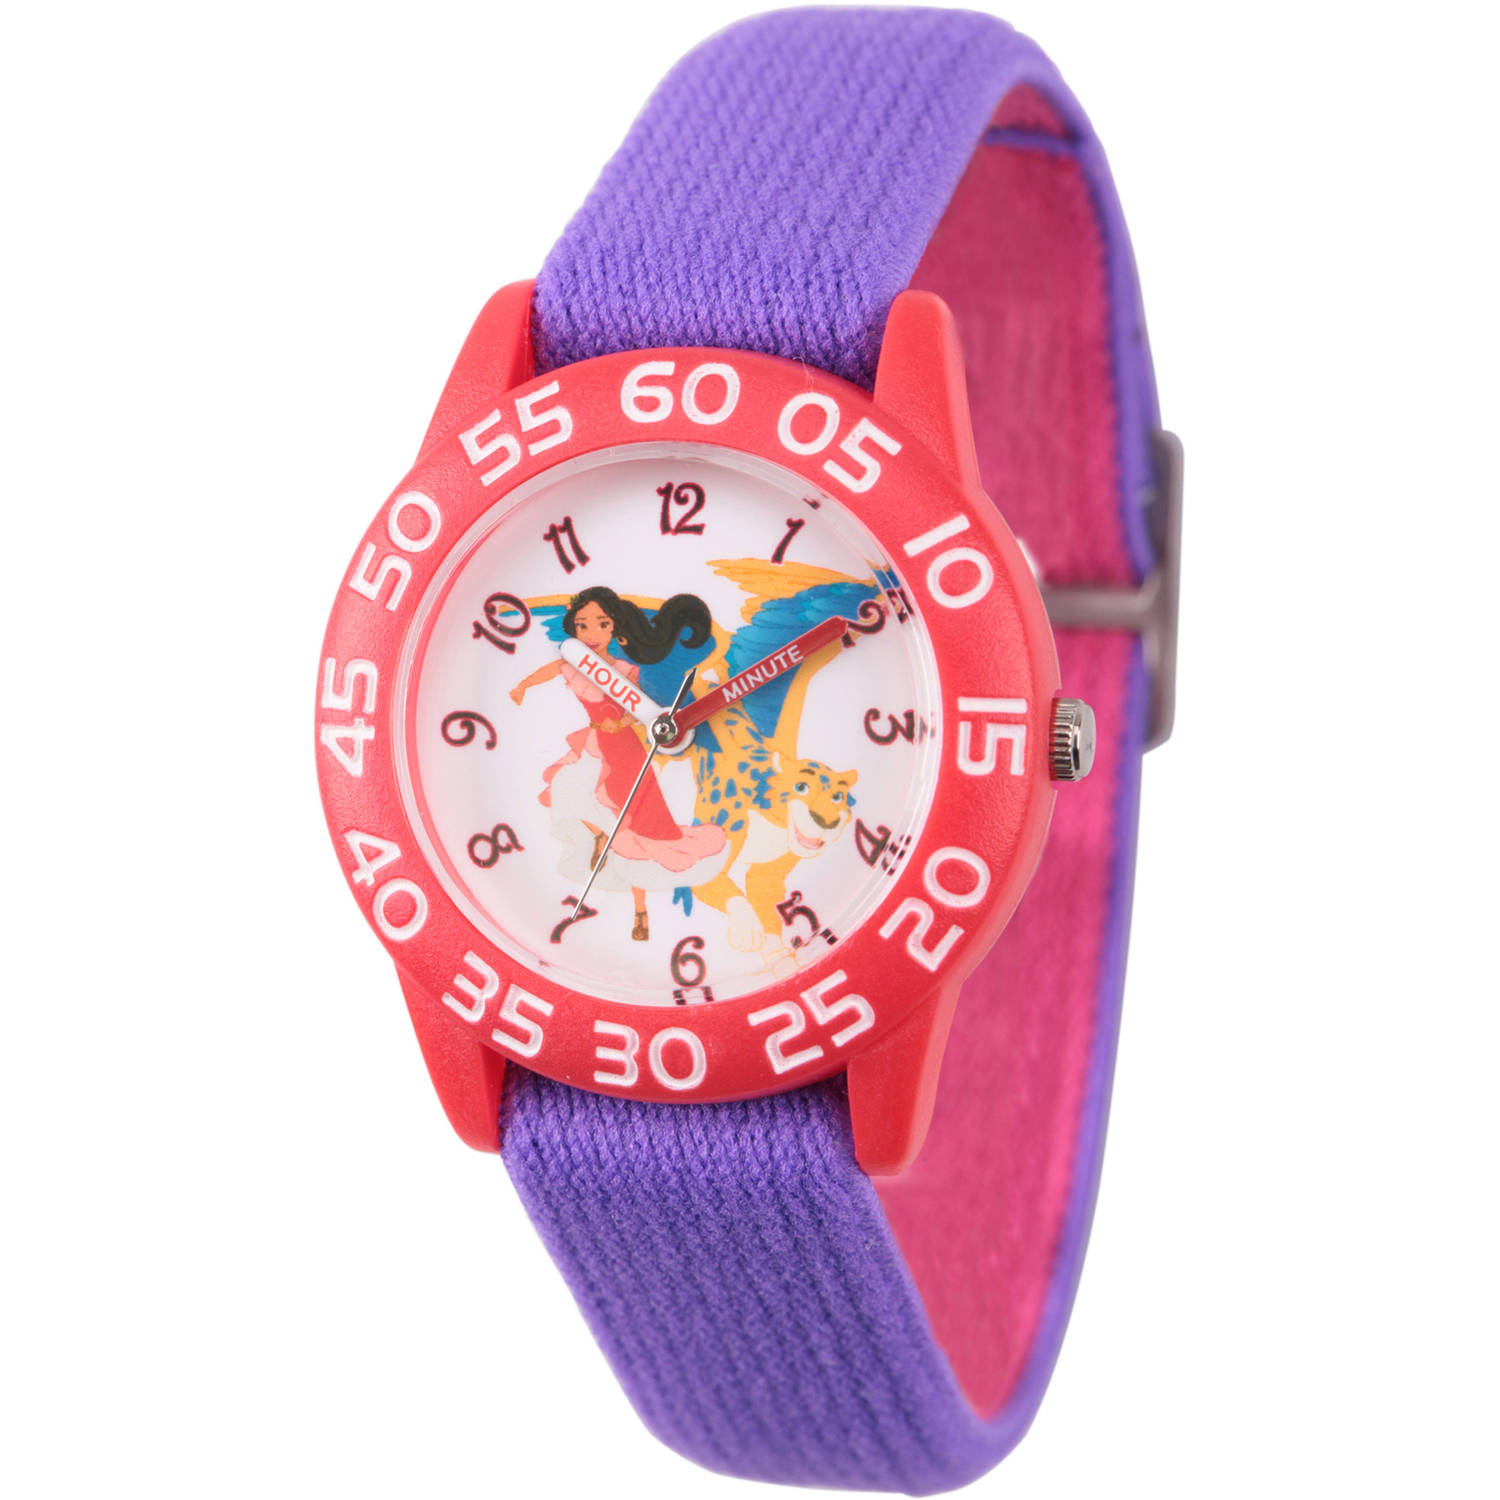 Elena of Avalor and Skylar Girls' Red Plastic Time Teacher Watch, Reversible Purple and Pink Nylon Strap